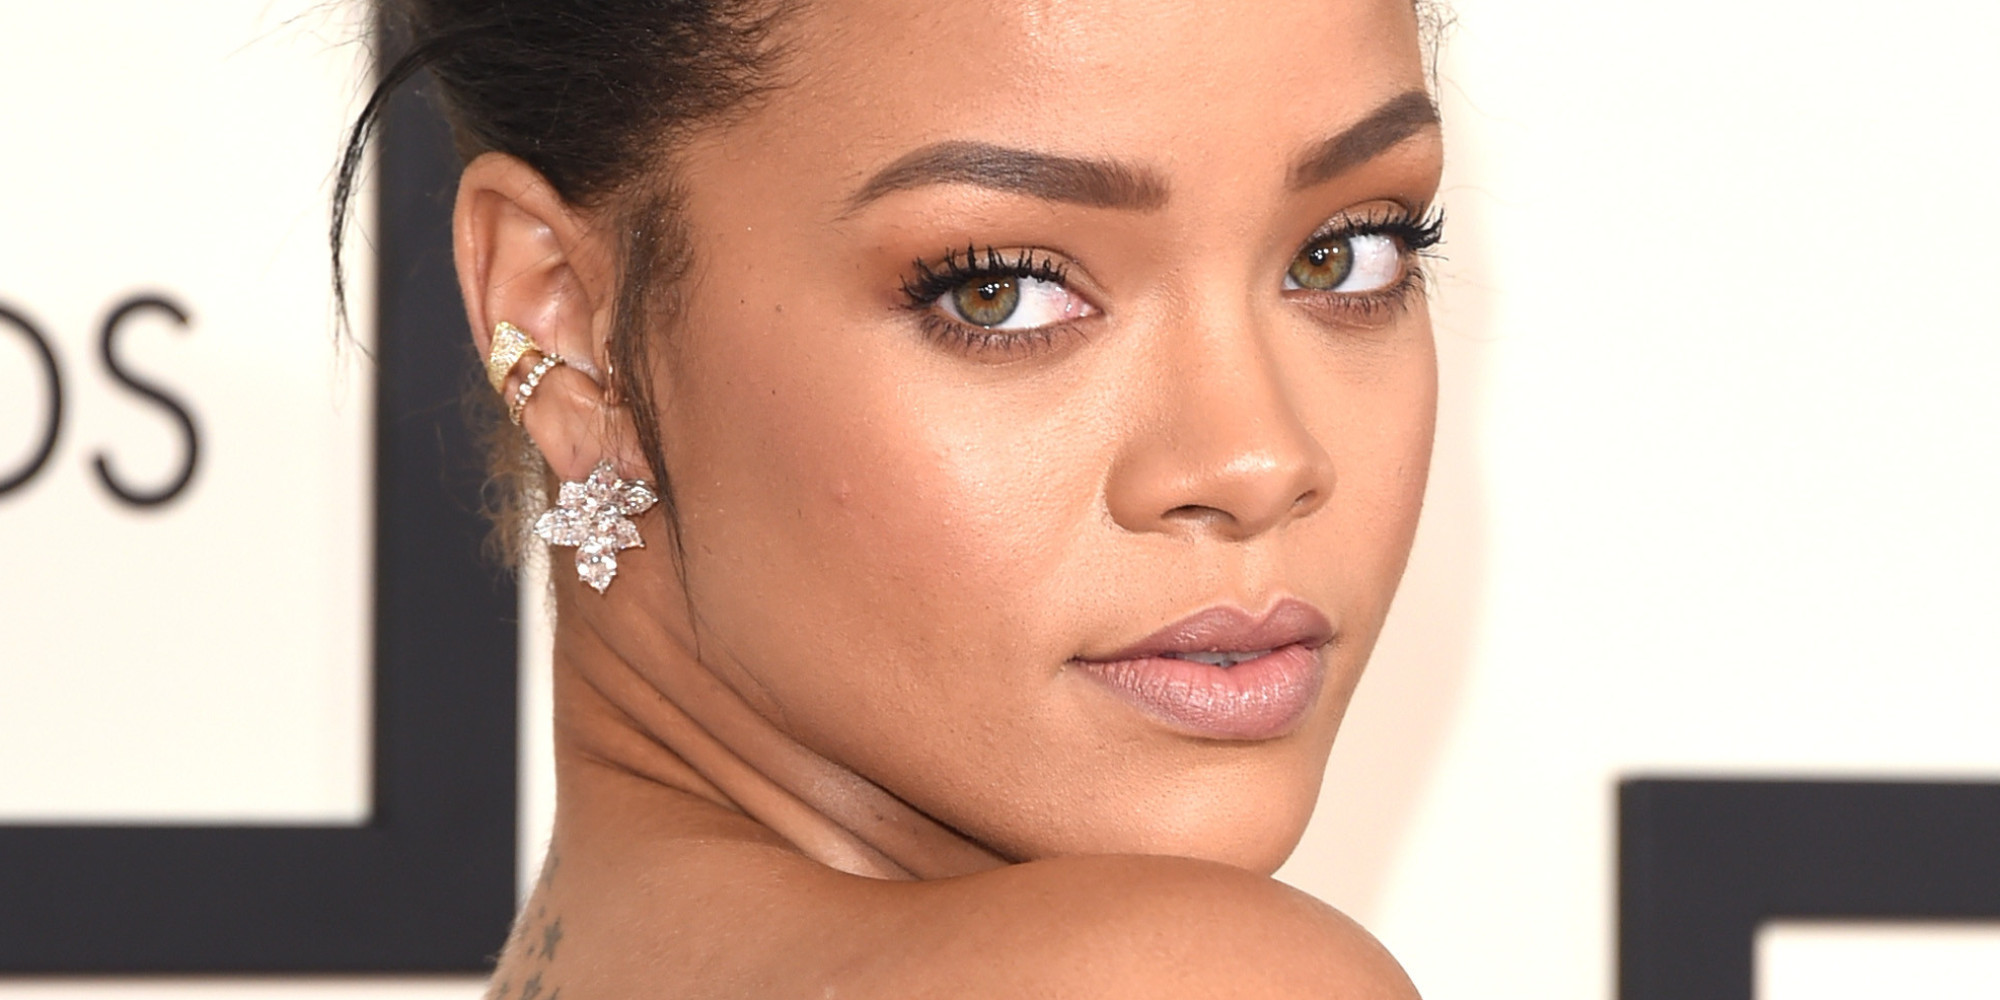 LOS ANGELES, CA - FEBRUARY 08: Singer Rihanna attends The 57th Annual GRAMMY Awards at the STAPLES Center on February 8, 2015 in Los Angeles, California. (Photo by Jason Merritt/Getty Images)